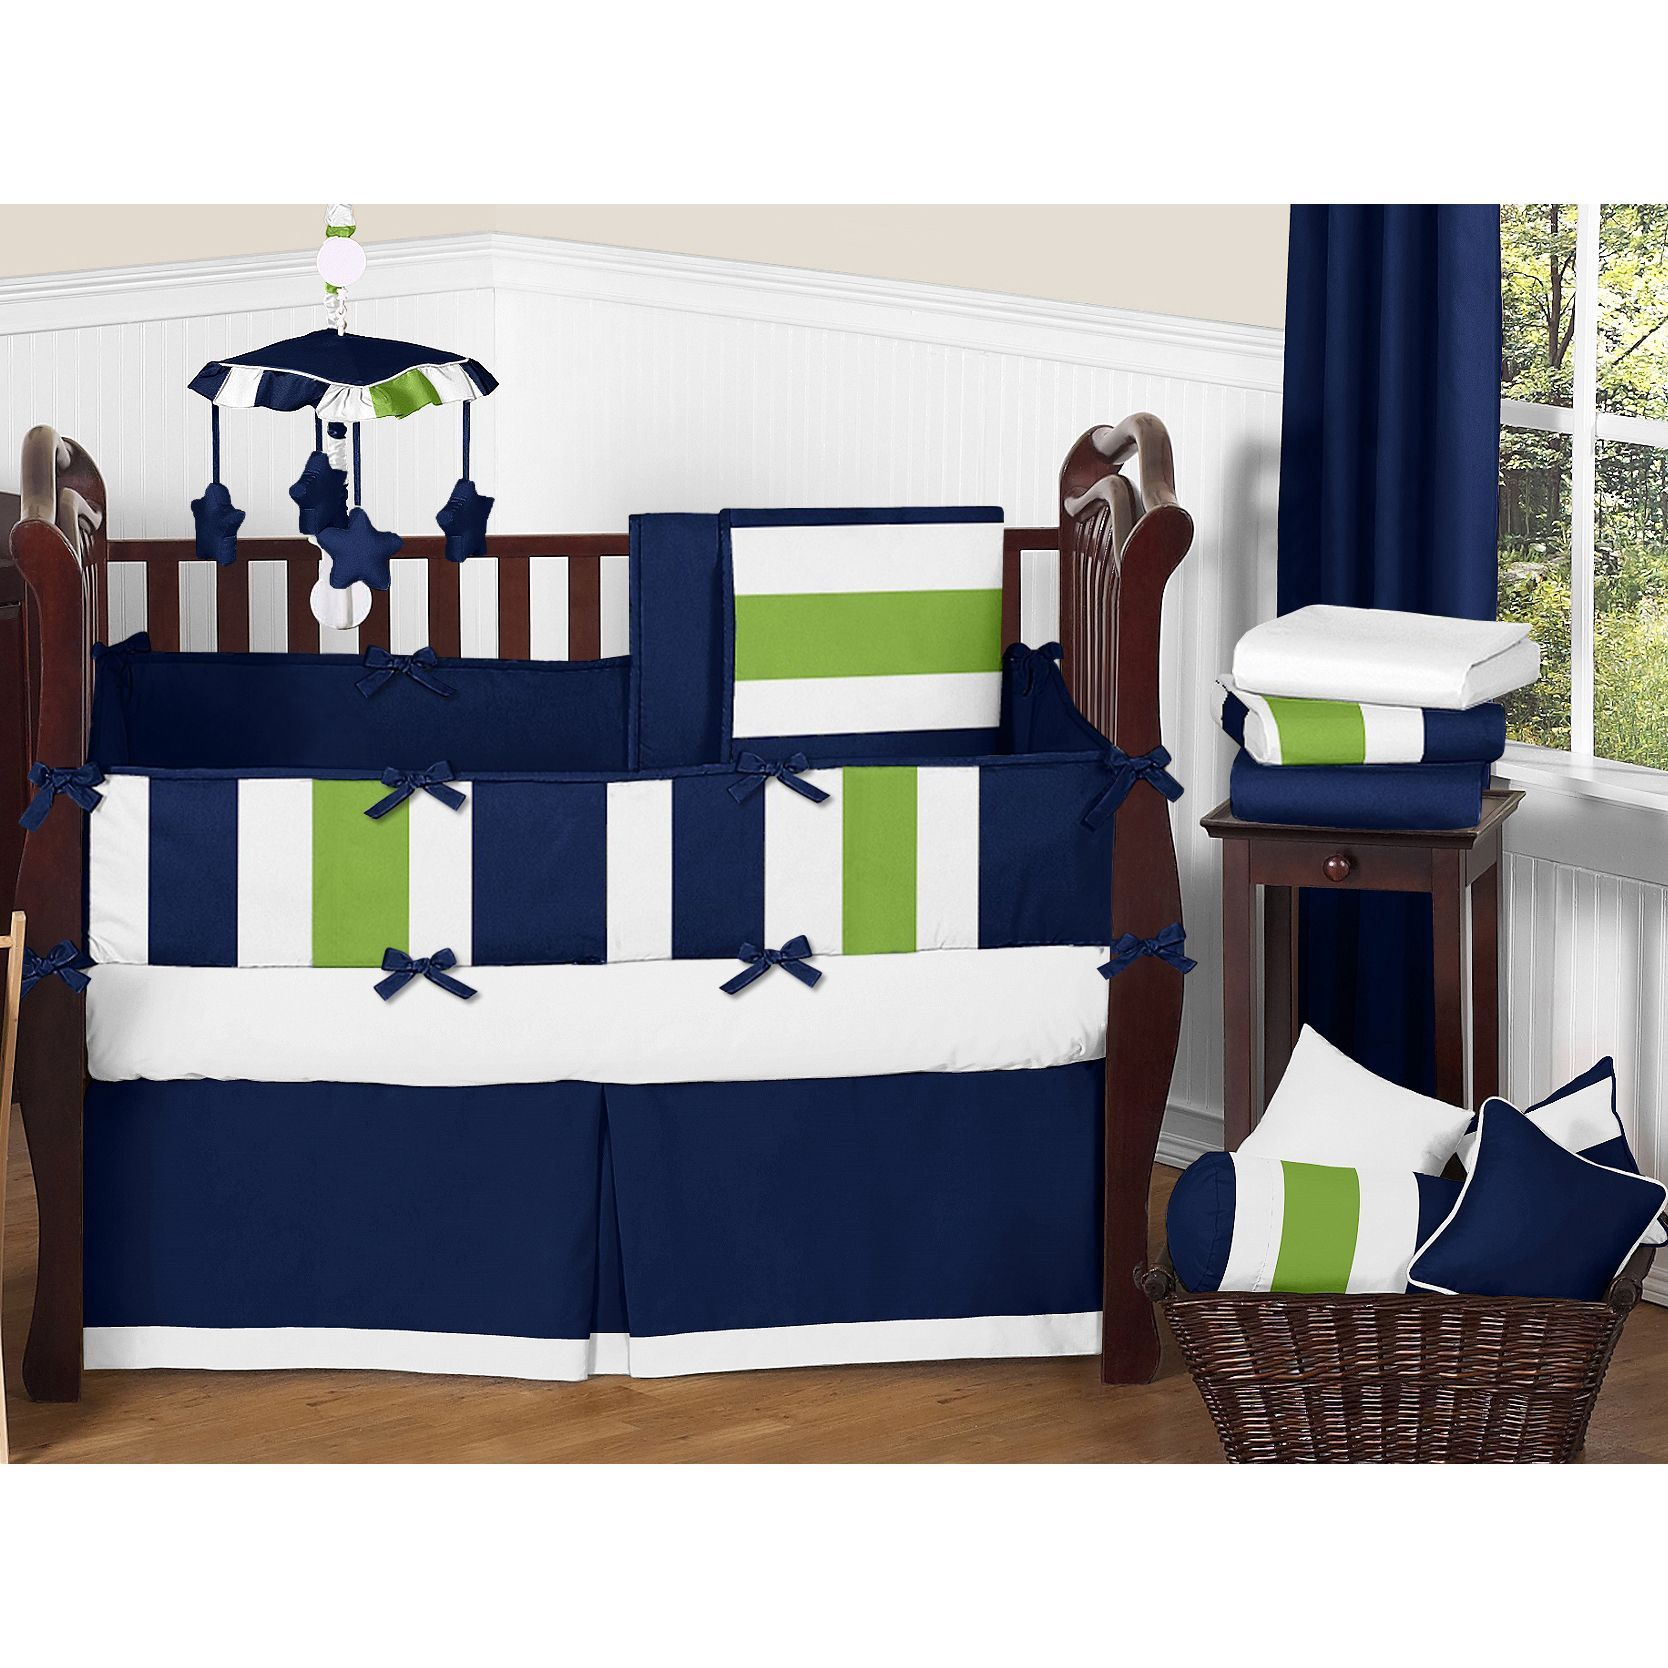 Set up your nursery in high style with this bold designer bedding